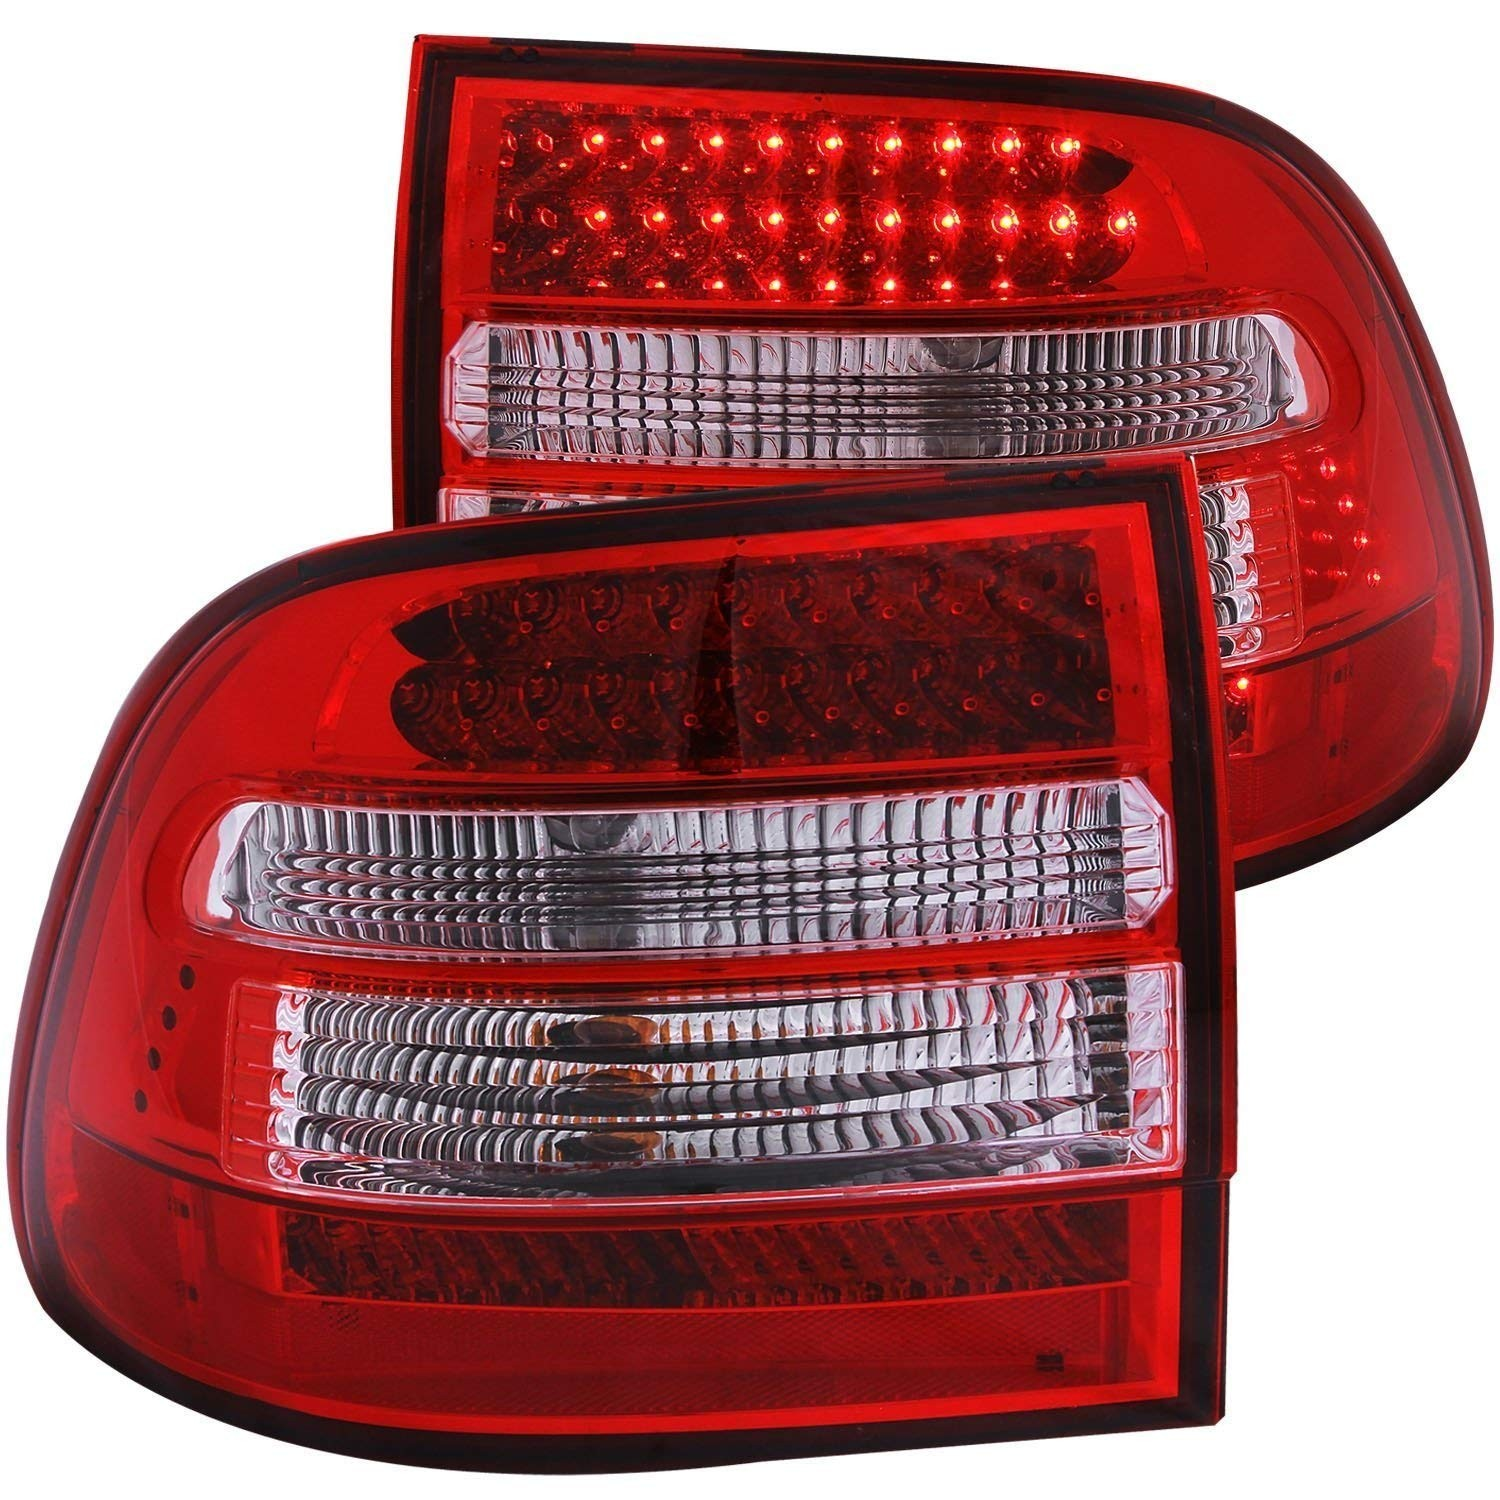 Amazon 2003 2006 PORSCHE CAYENNE REAR BRAKE LAMPS LED TAIL LIGHTS DRL RUNNING FOG PAIR Automotive